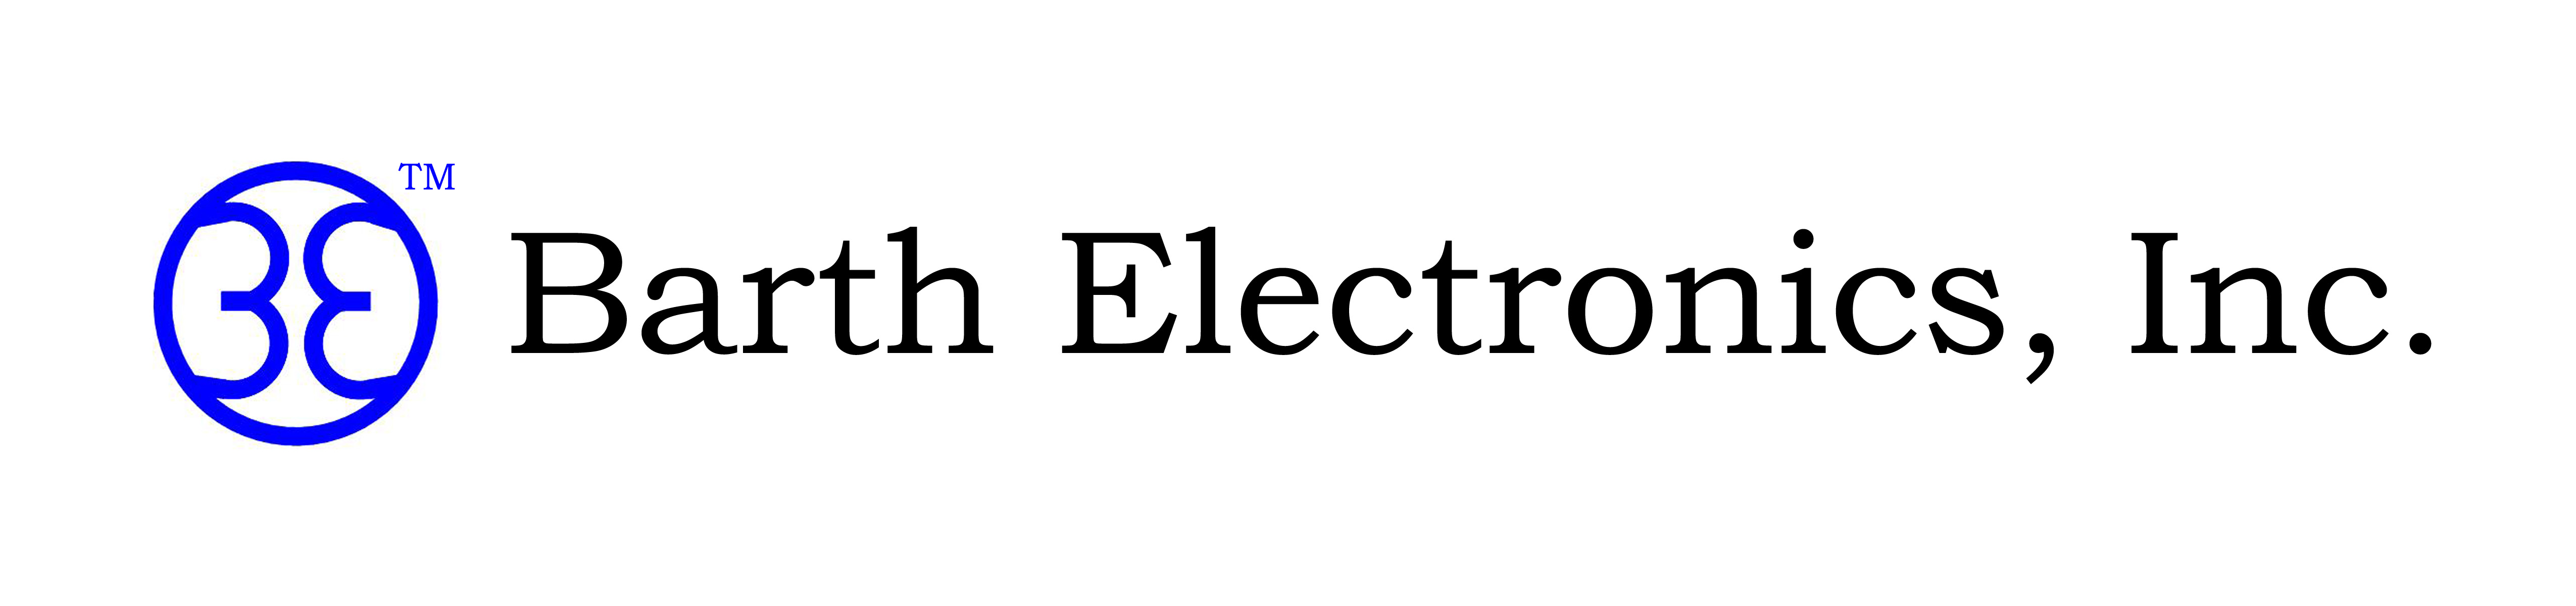 Barth Electronics, Inc.